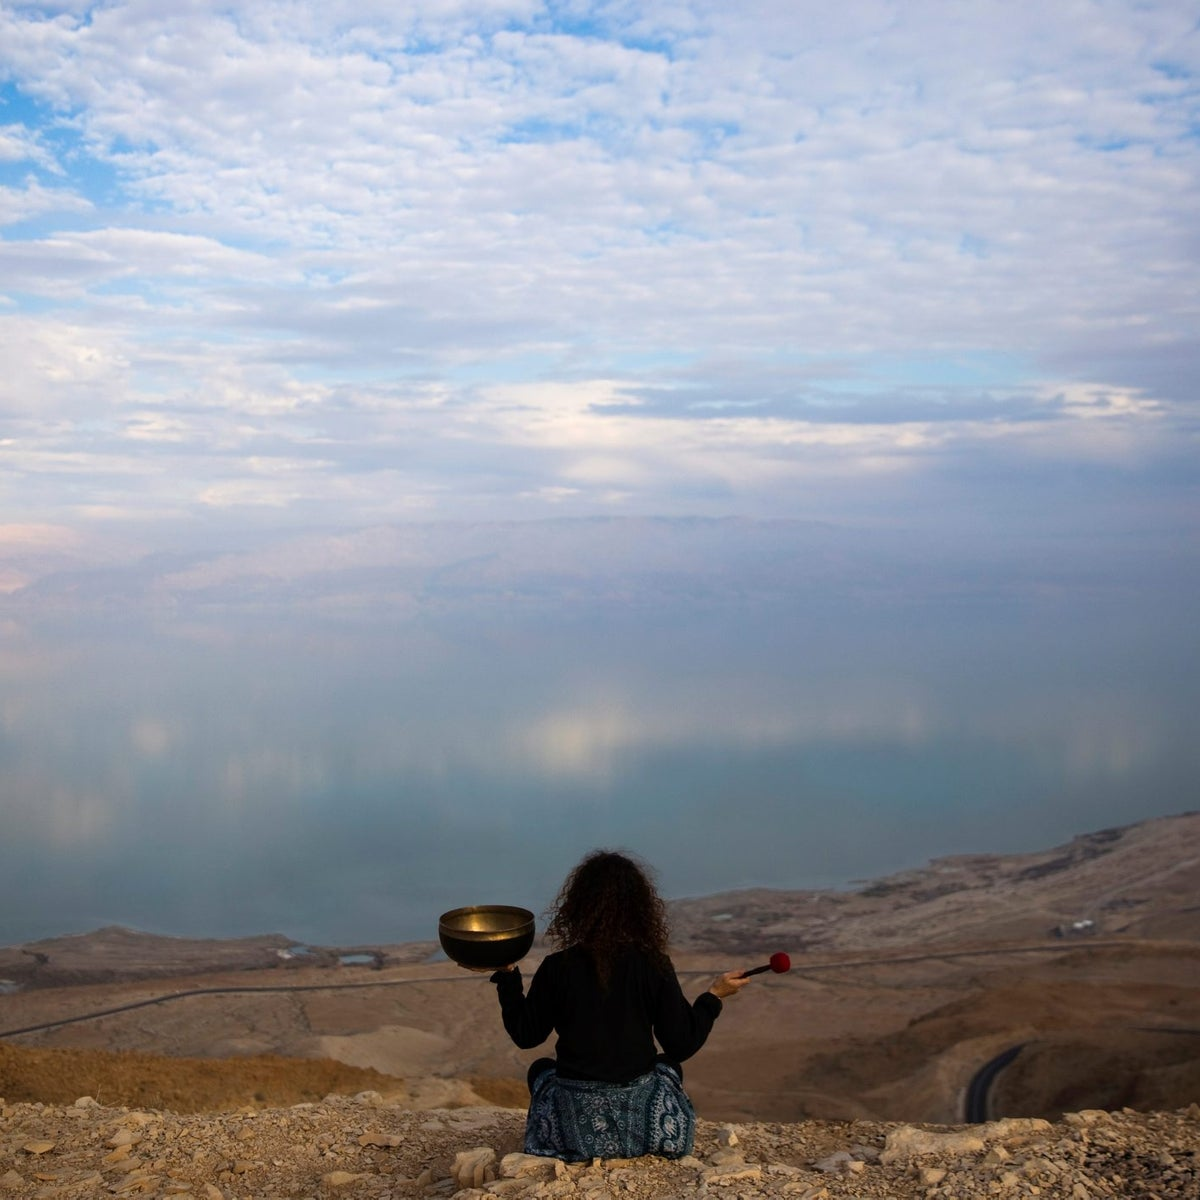 Jade holds a Tibetan singing bowl as she sits on a cliff overlooking the Dead Sea, February 20, 2018.